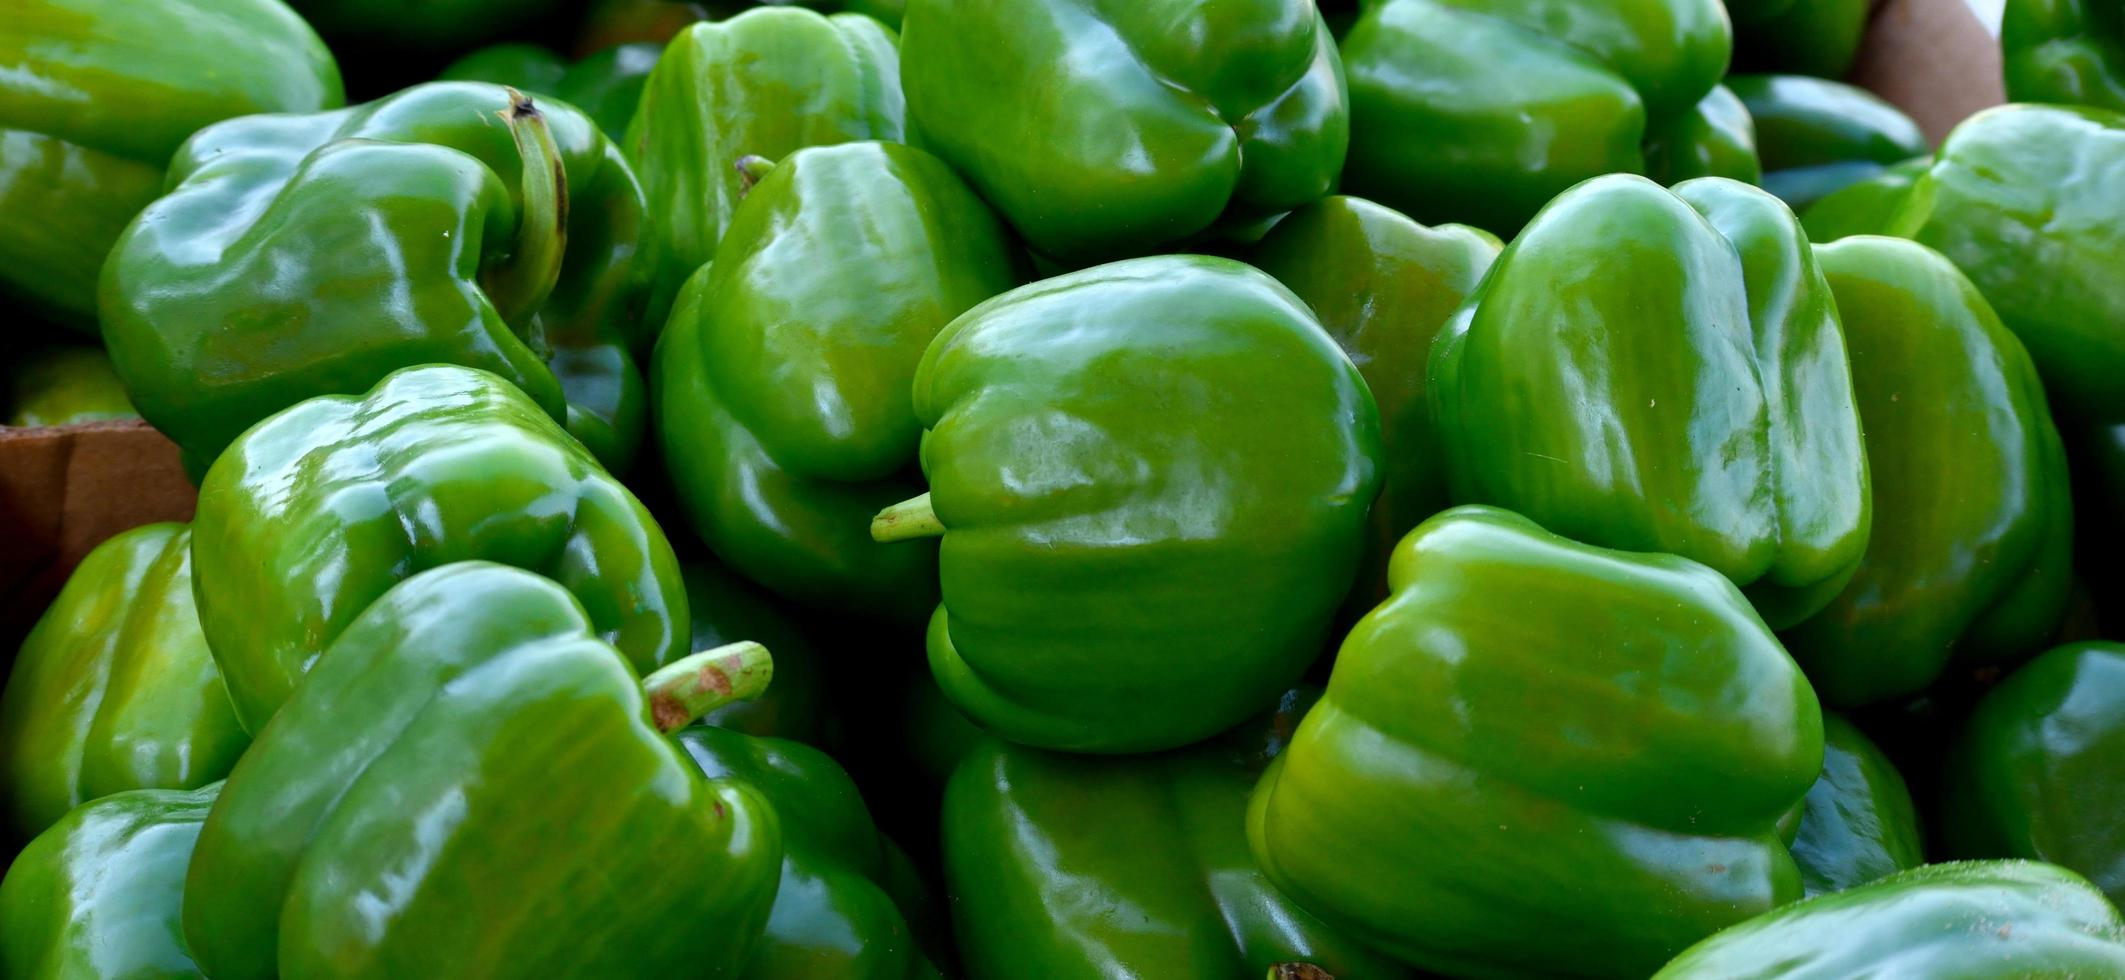 Green peppers at the market photo